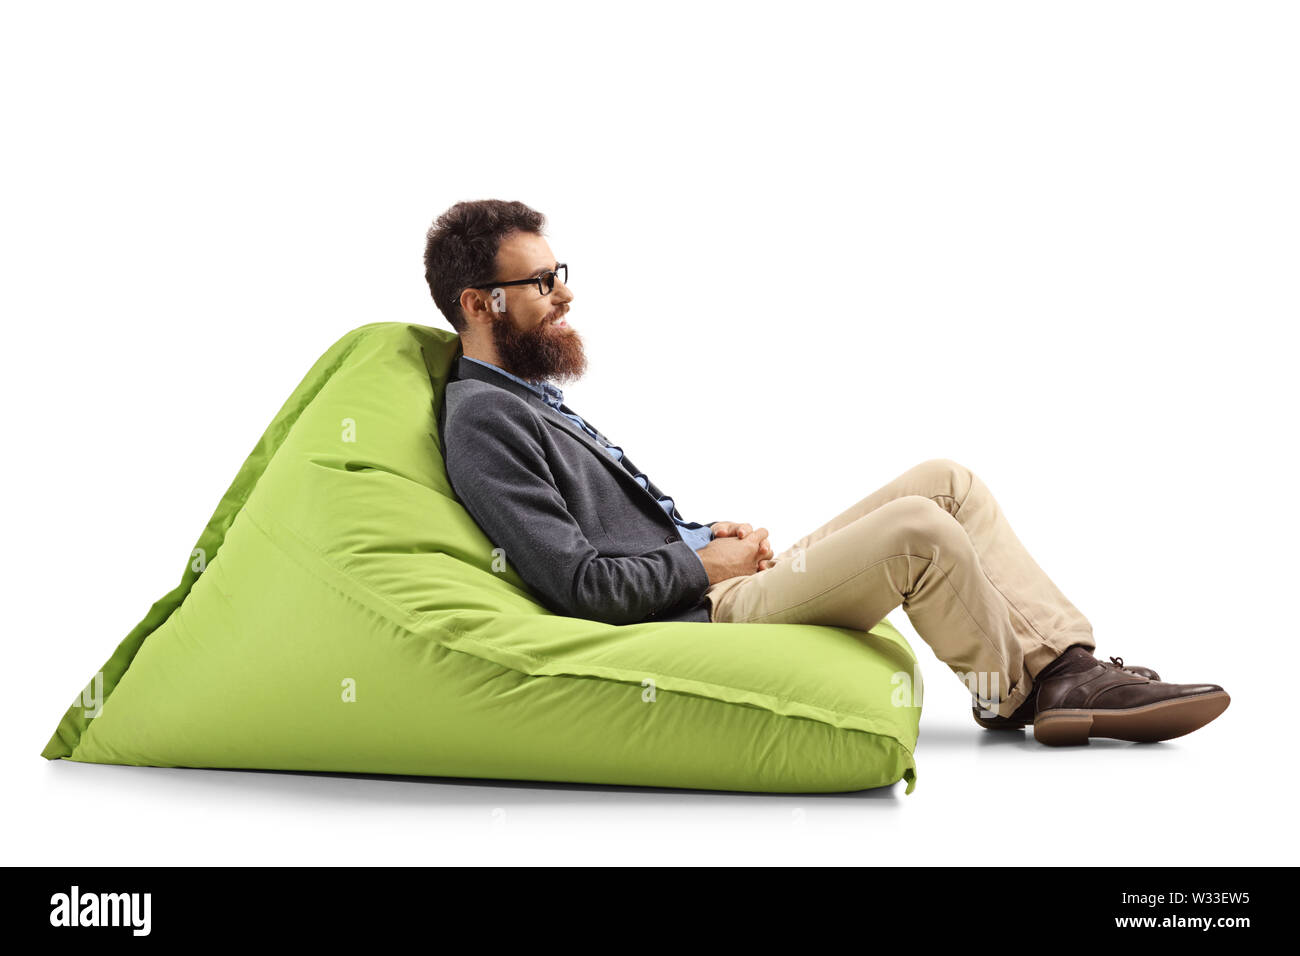 Marvelous Bean Bag Chair Cut Out Stock Images Pictures Alamy Caraccident5 Cool Chair Designs And Ideas Caraccident5Info